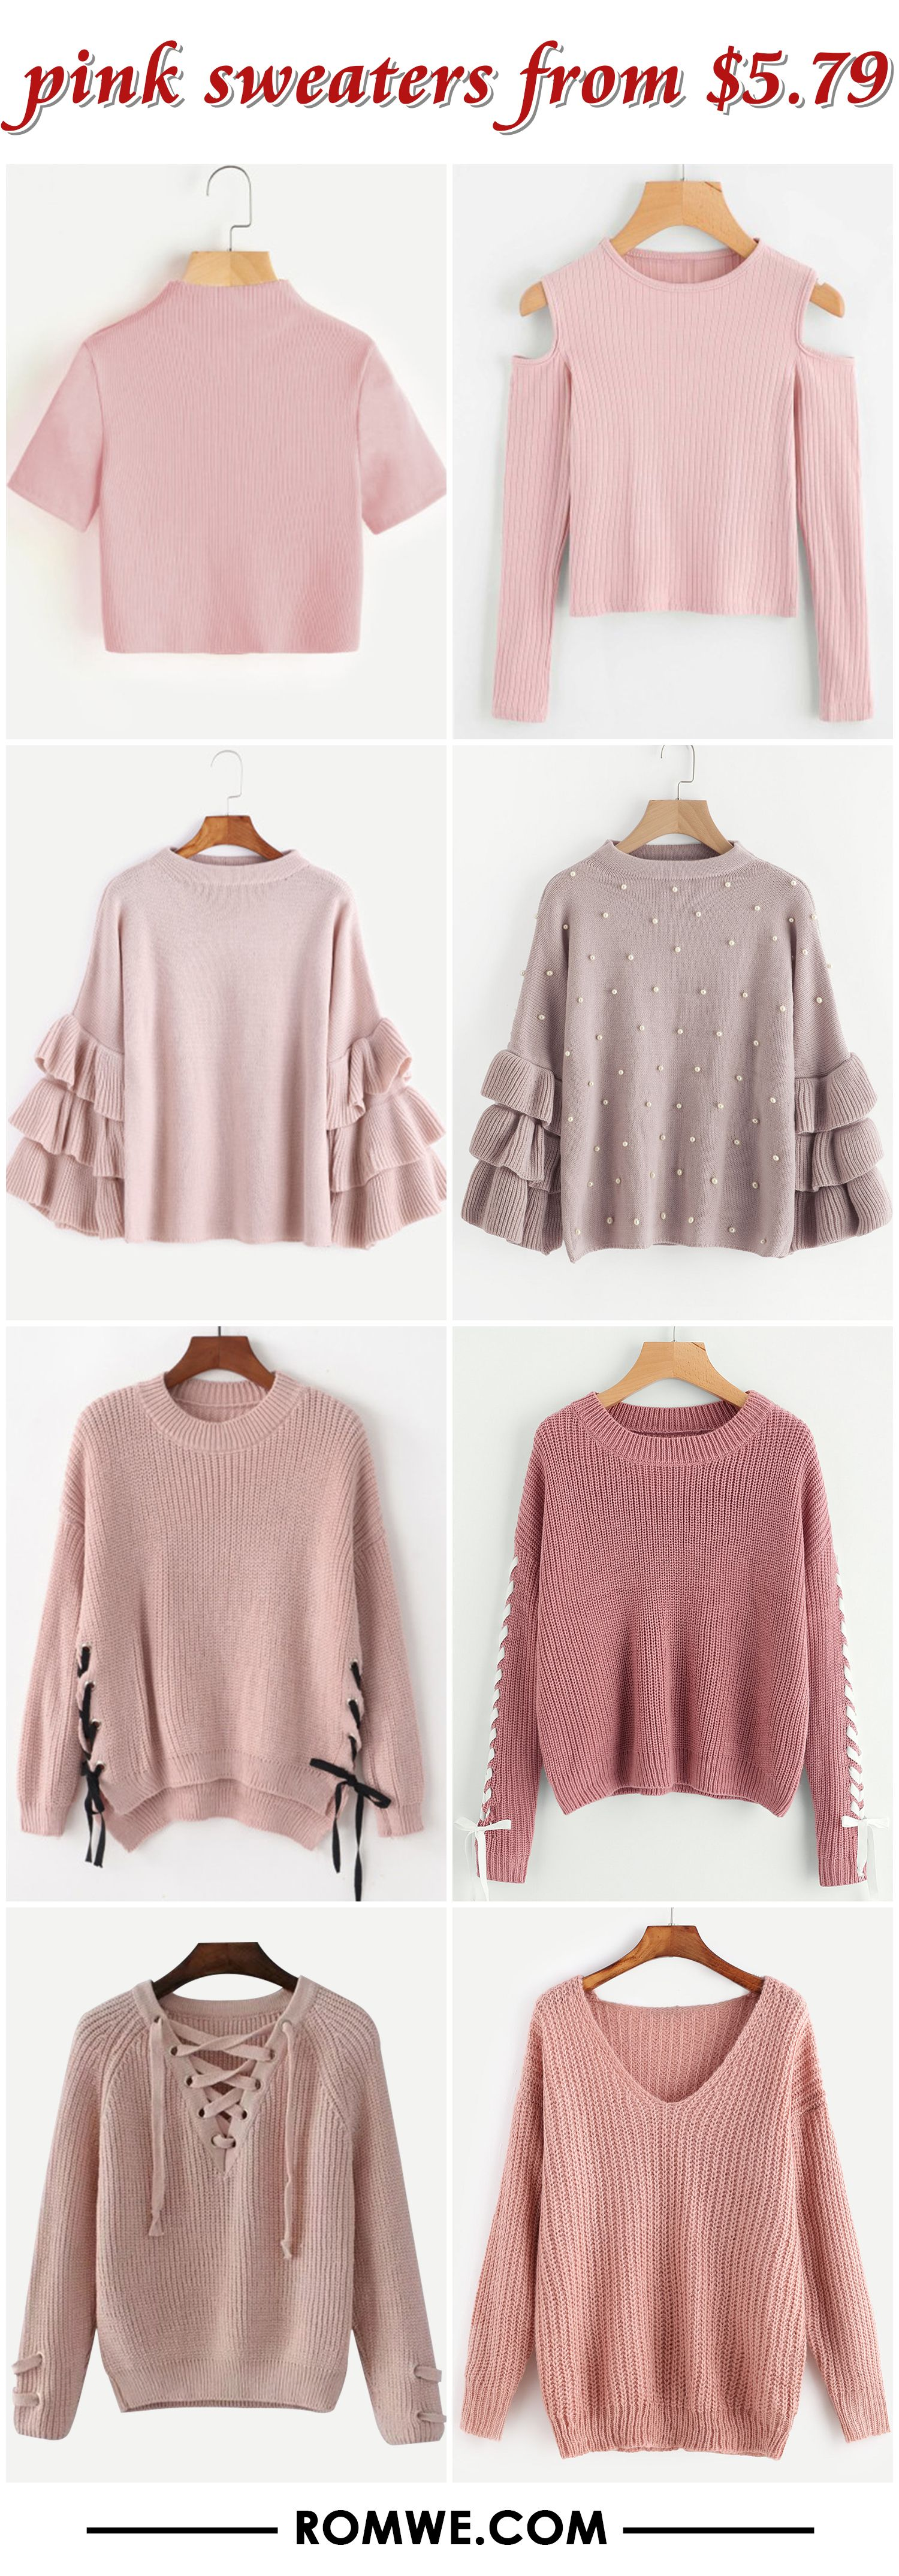 pink sweaters from clothes in 2018. Black Bedroom Furniture Sets. Home Design Ideas